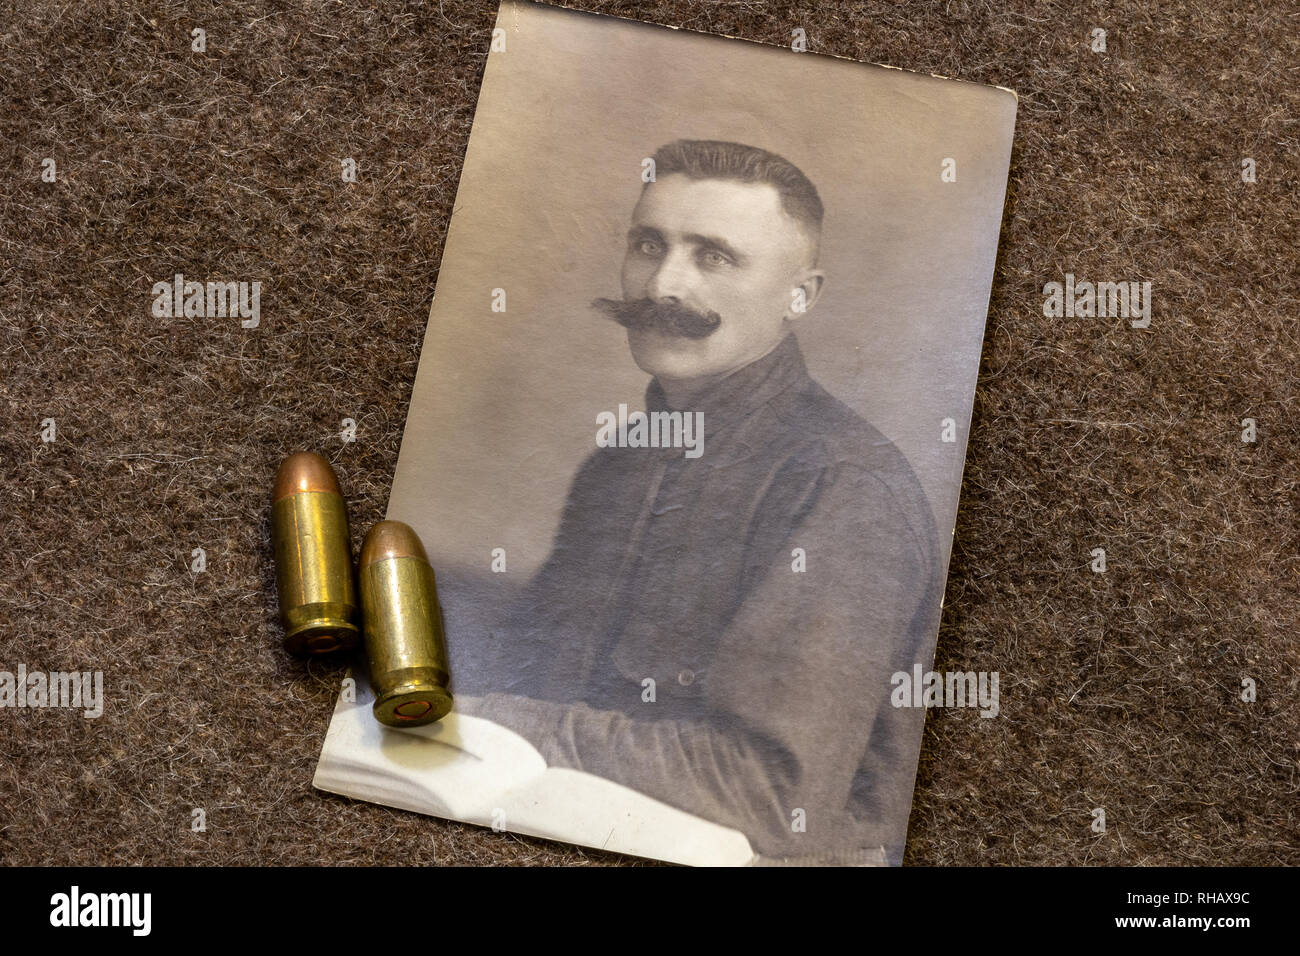 Portrait of officer in period of World War I and pistol bullets on trench coat - Stock Image